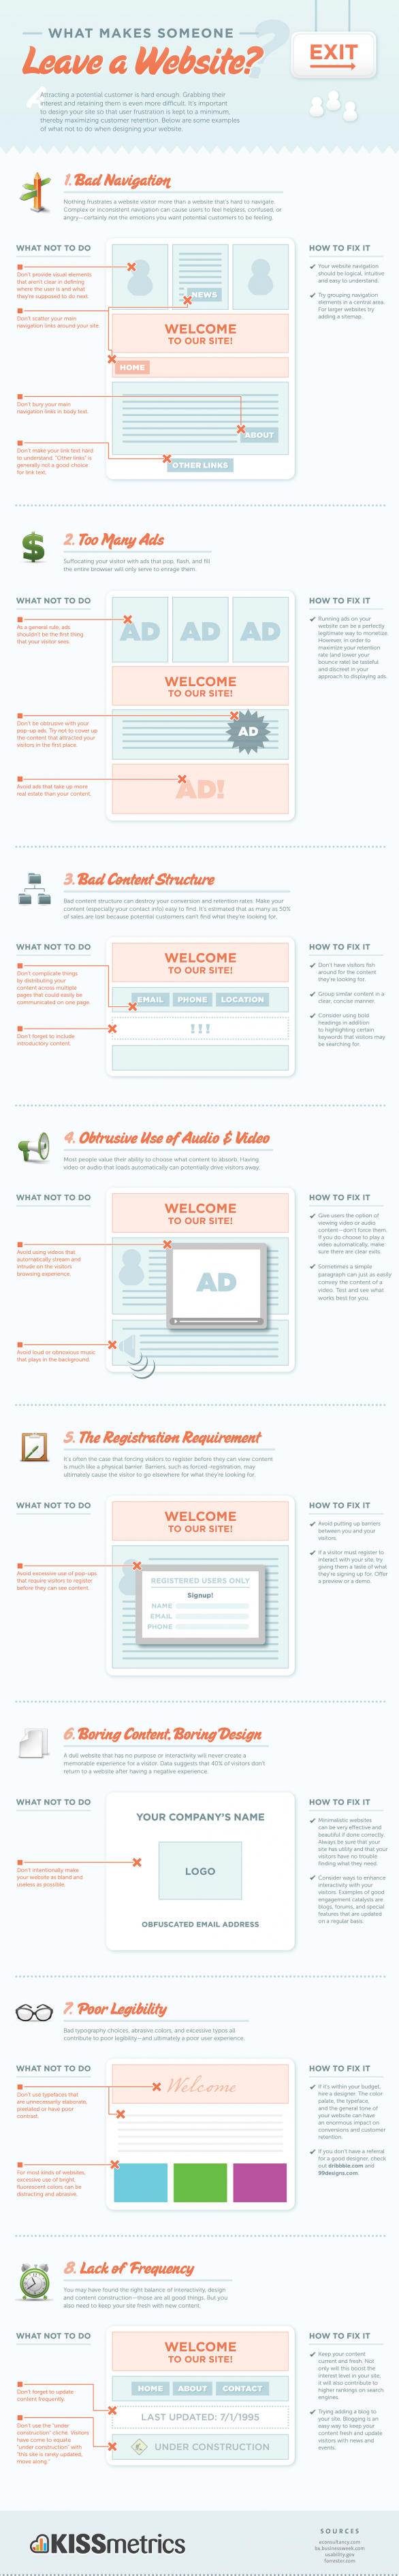 8 Website Design No Nos! [Infographic] image Leave a website infographic1